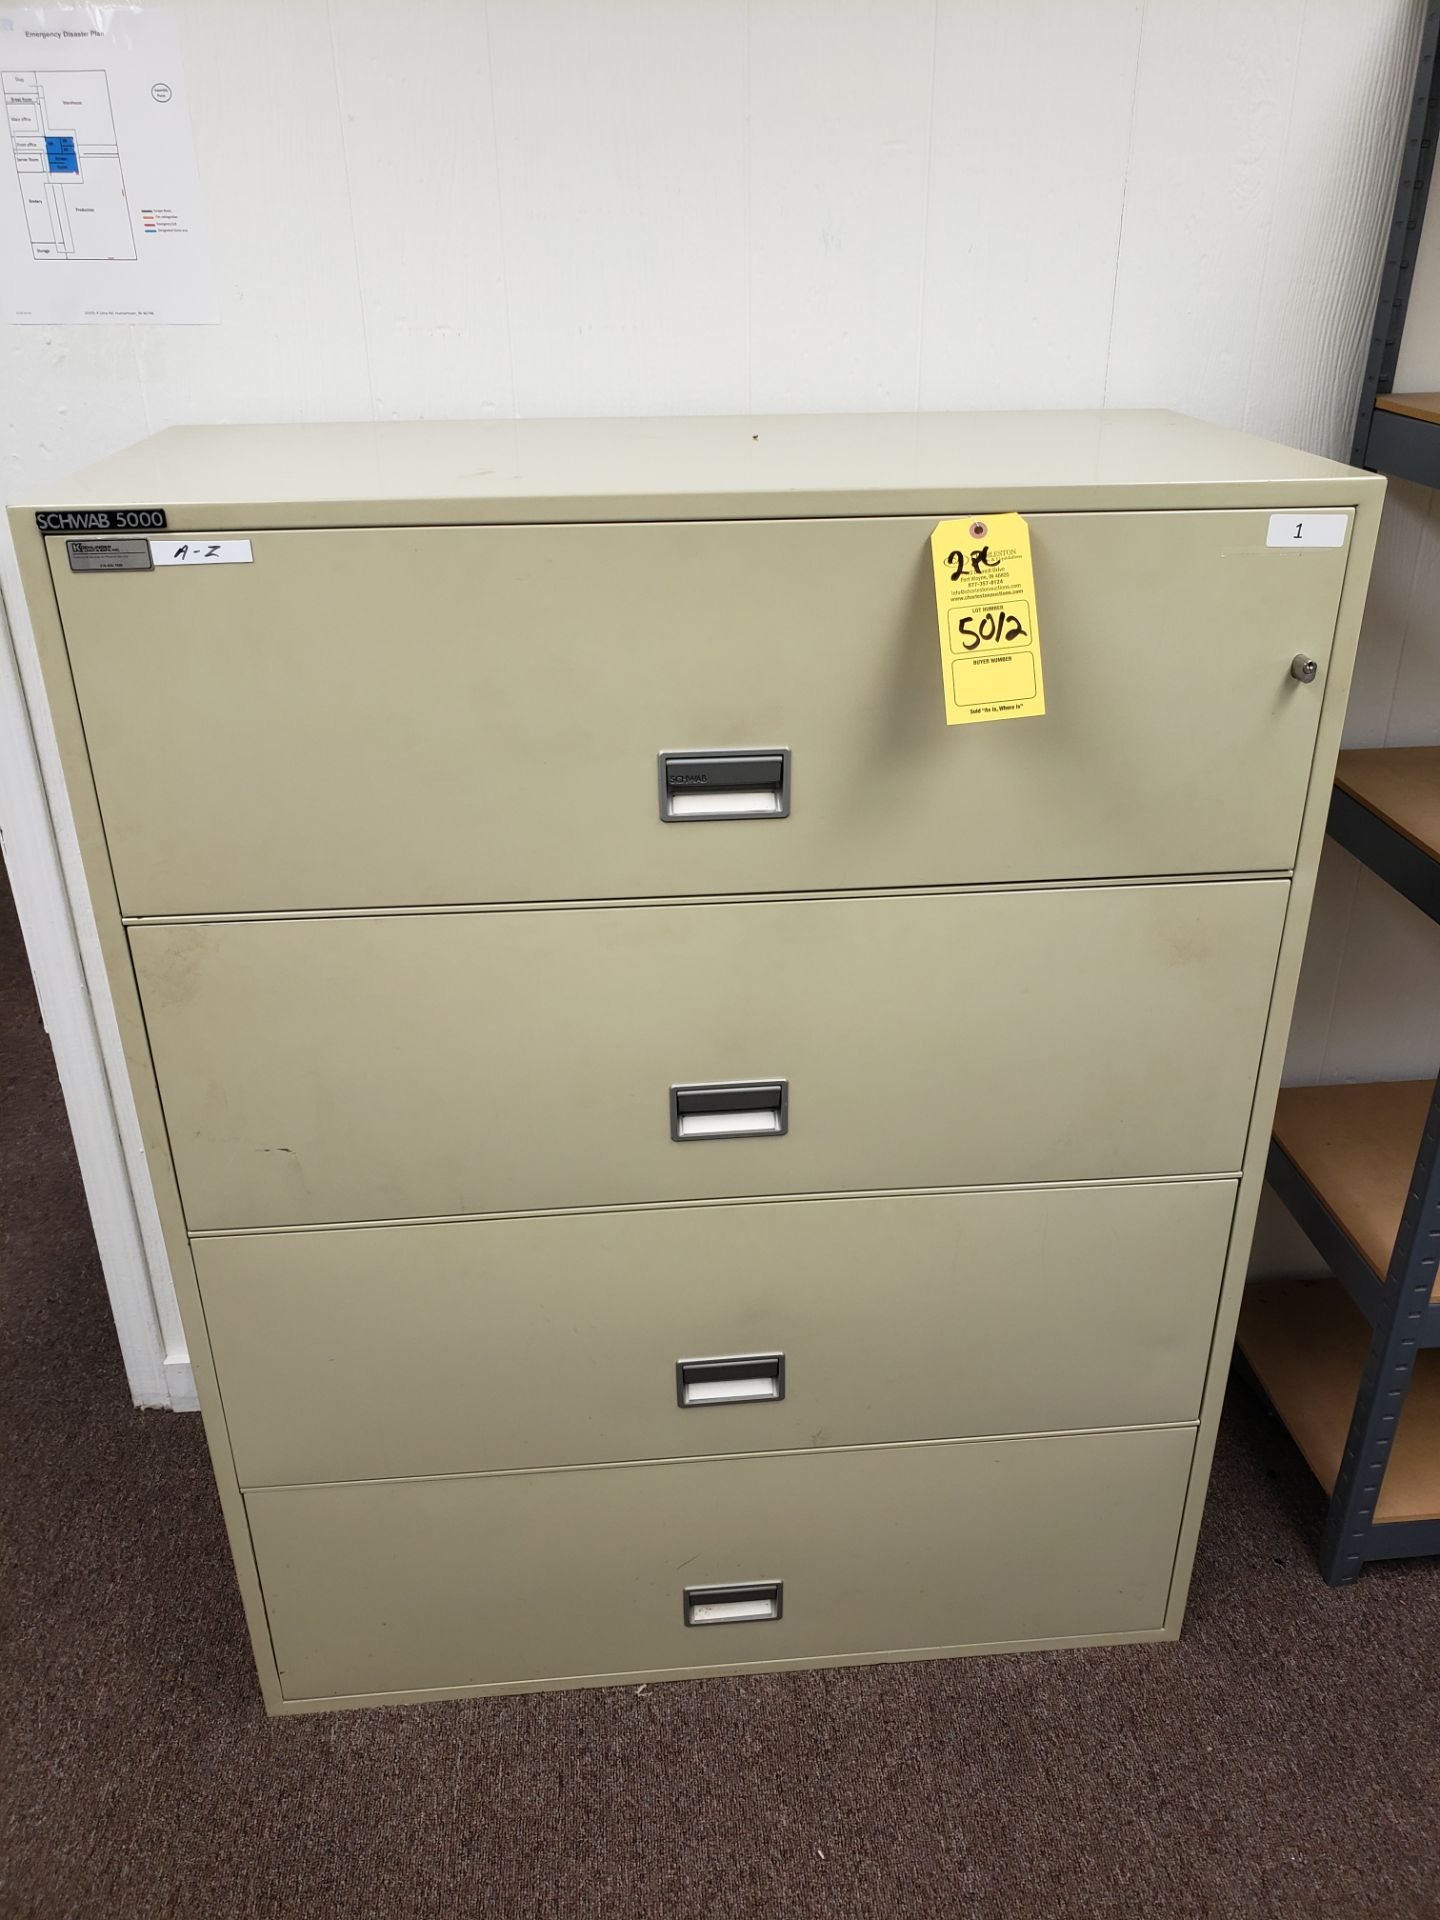 Lot 5012 - LOT OF (2) SCHWAB 5000 FILE CABINET (LOCATED AT: 16335 LIMA ROAD BLDG. 4 HUNTERTOWN, IN 46748)